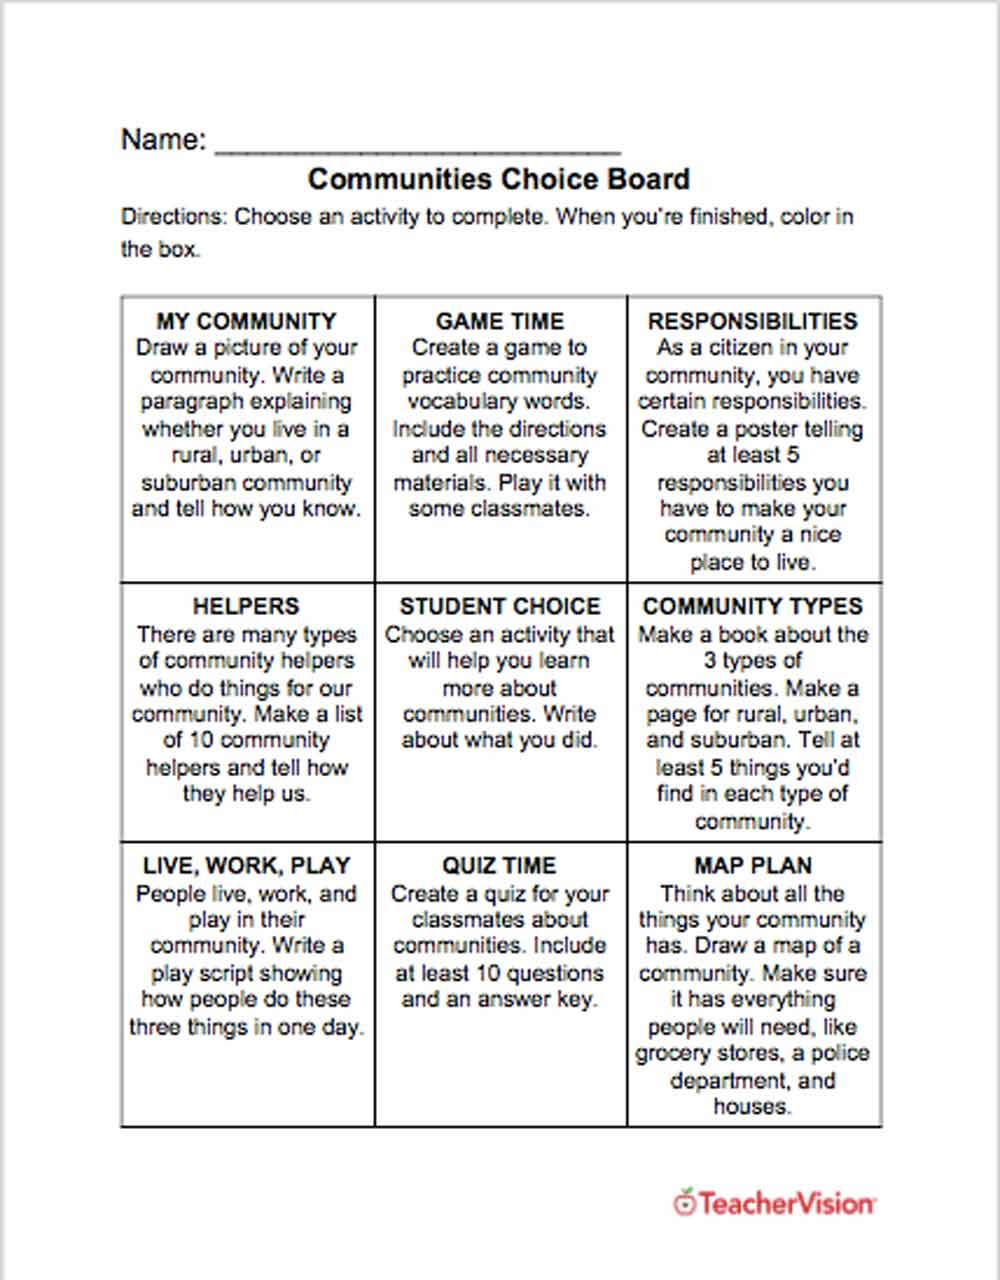 Communities Choice Board